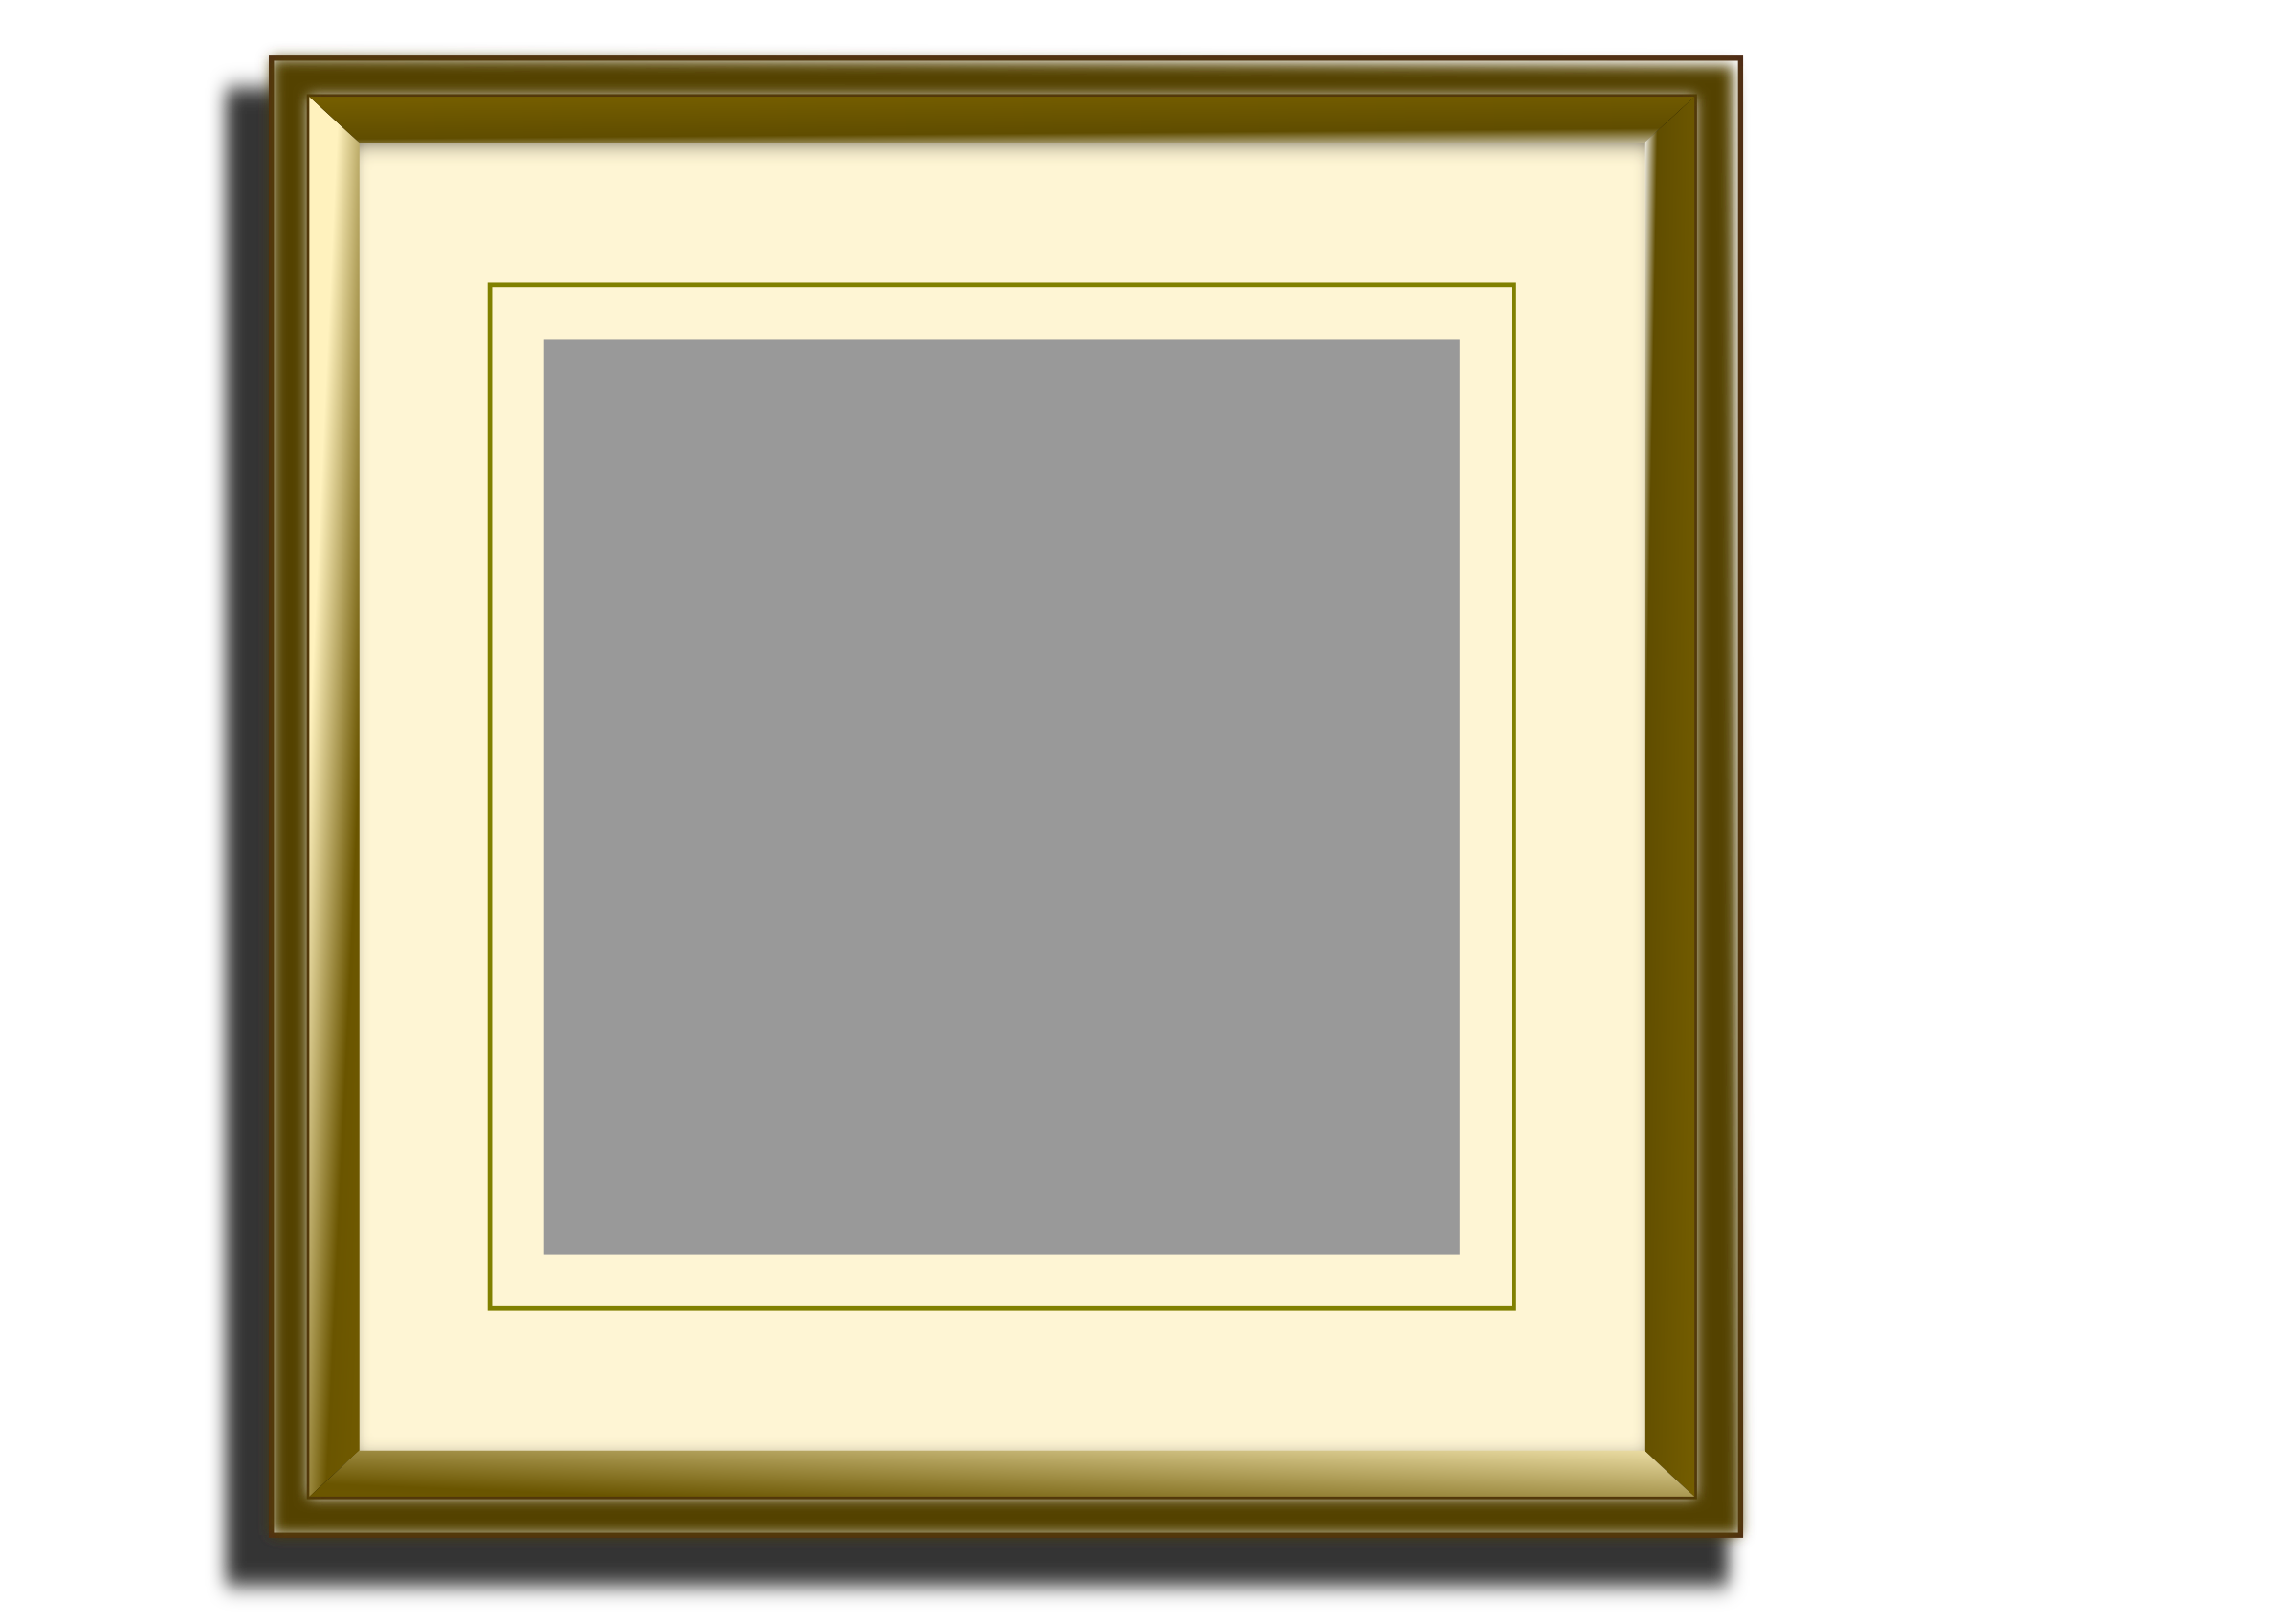 Golden picture frame for square images by ConnyOnny